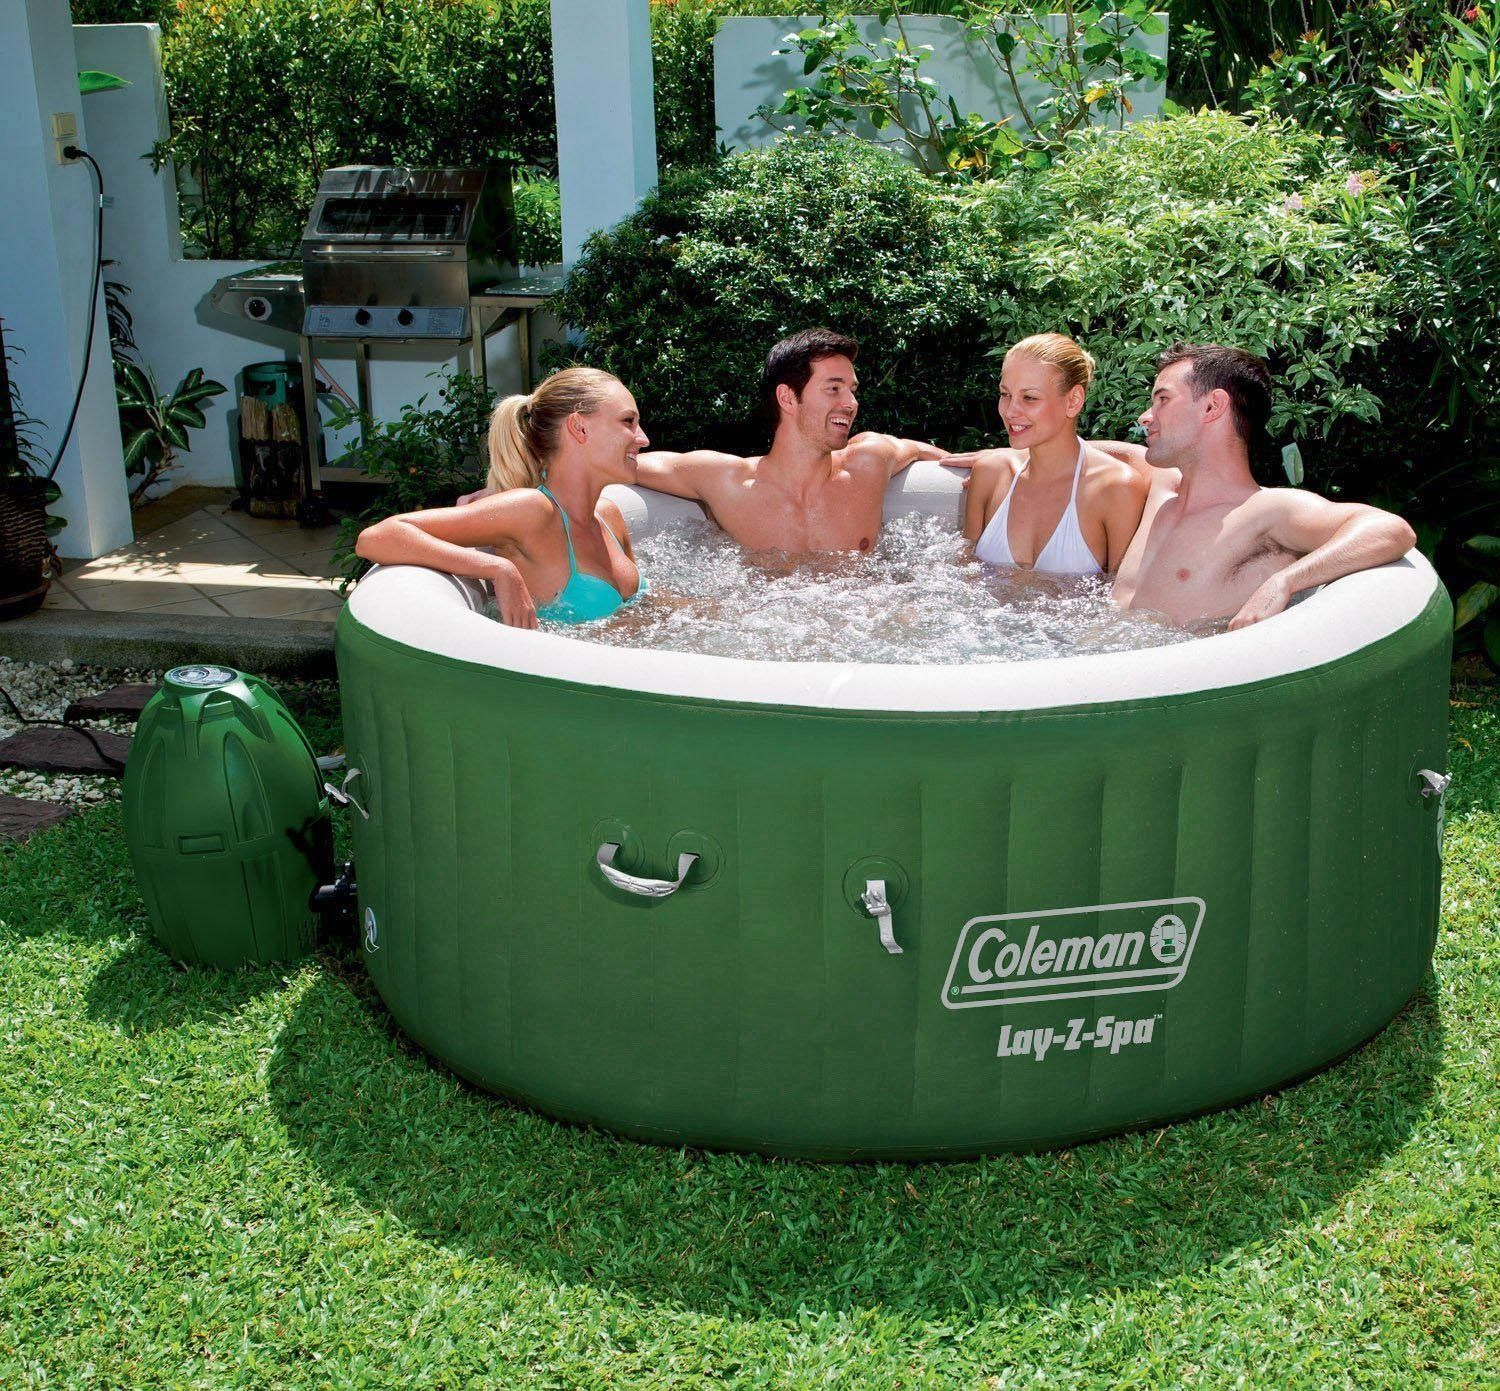 Outdoor Whirlpool Cheap 9 Amazing Cheap Hot Tubs Under 1000 For Home Relaxation